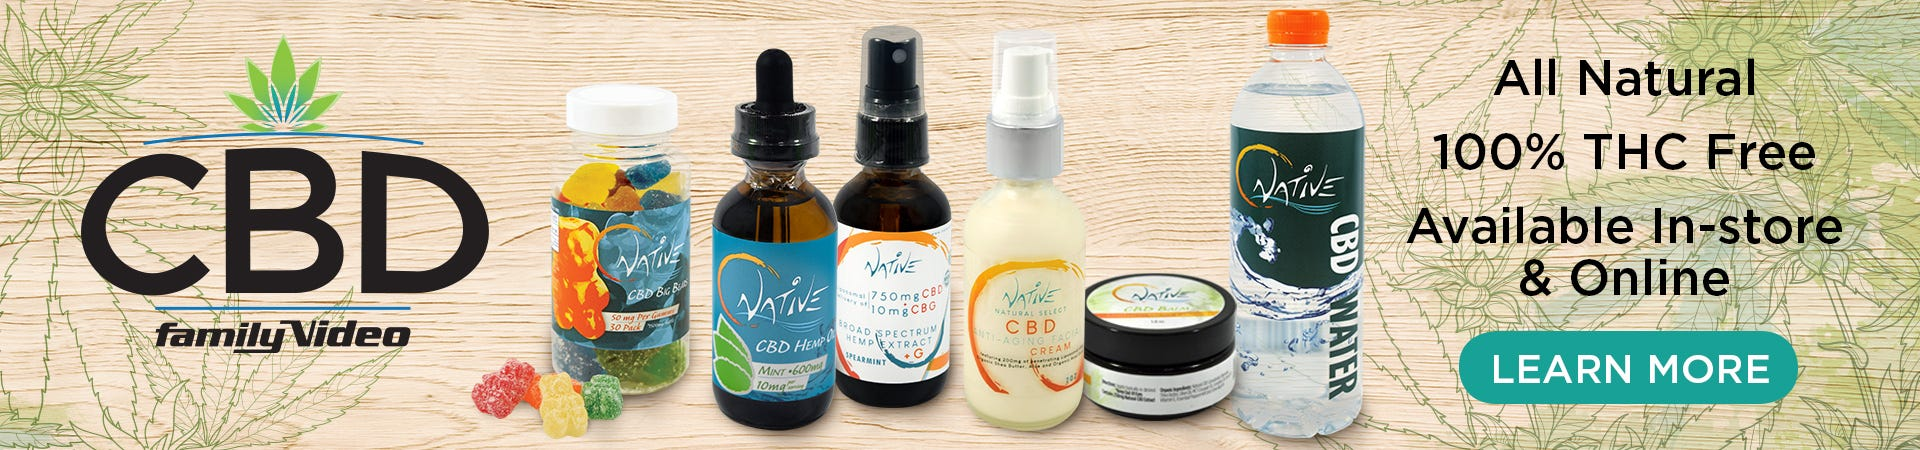 Your Trusted Source For High-Quality, All Natural THC-Free CBD